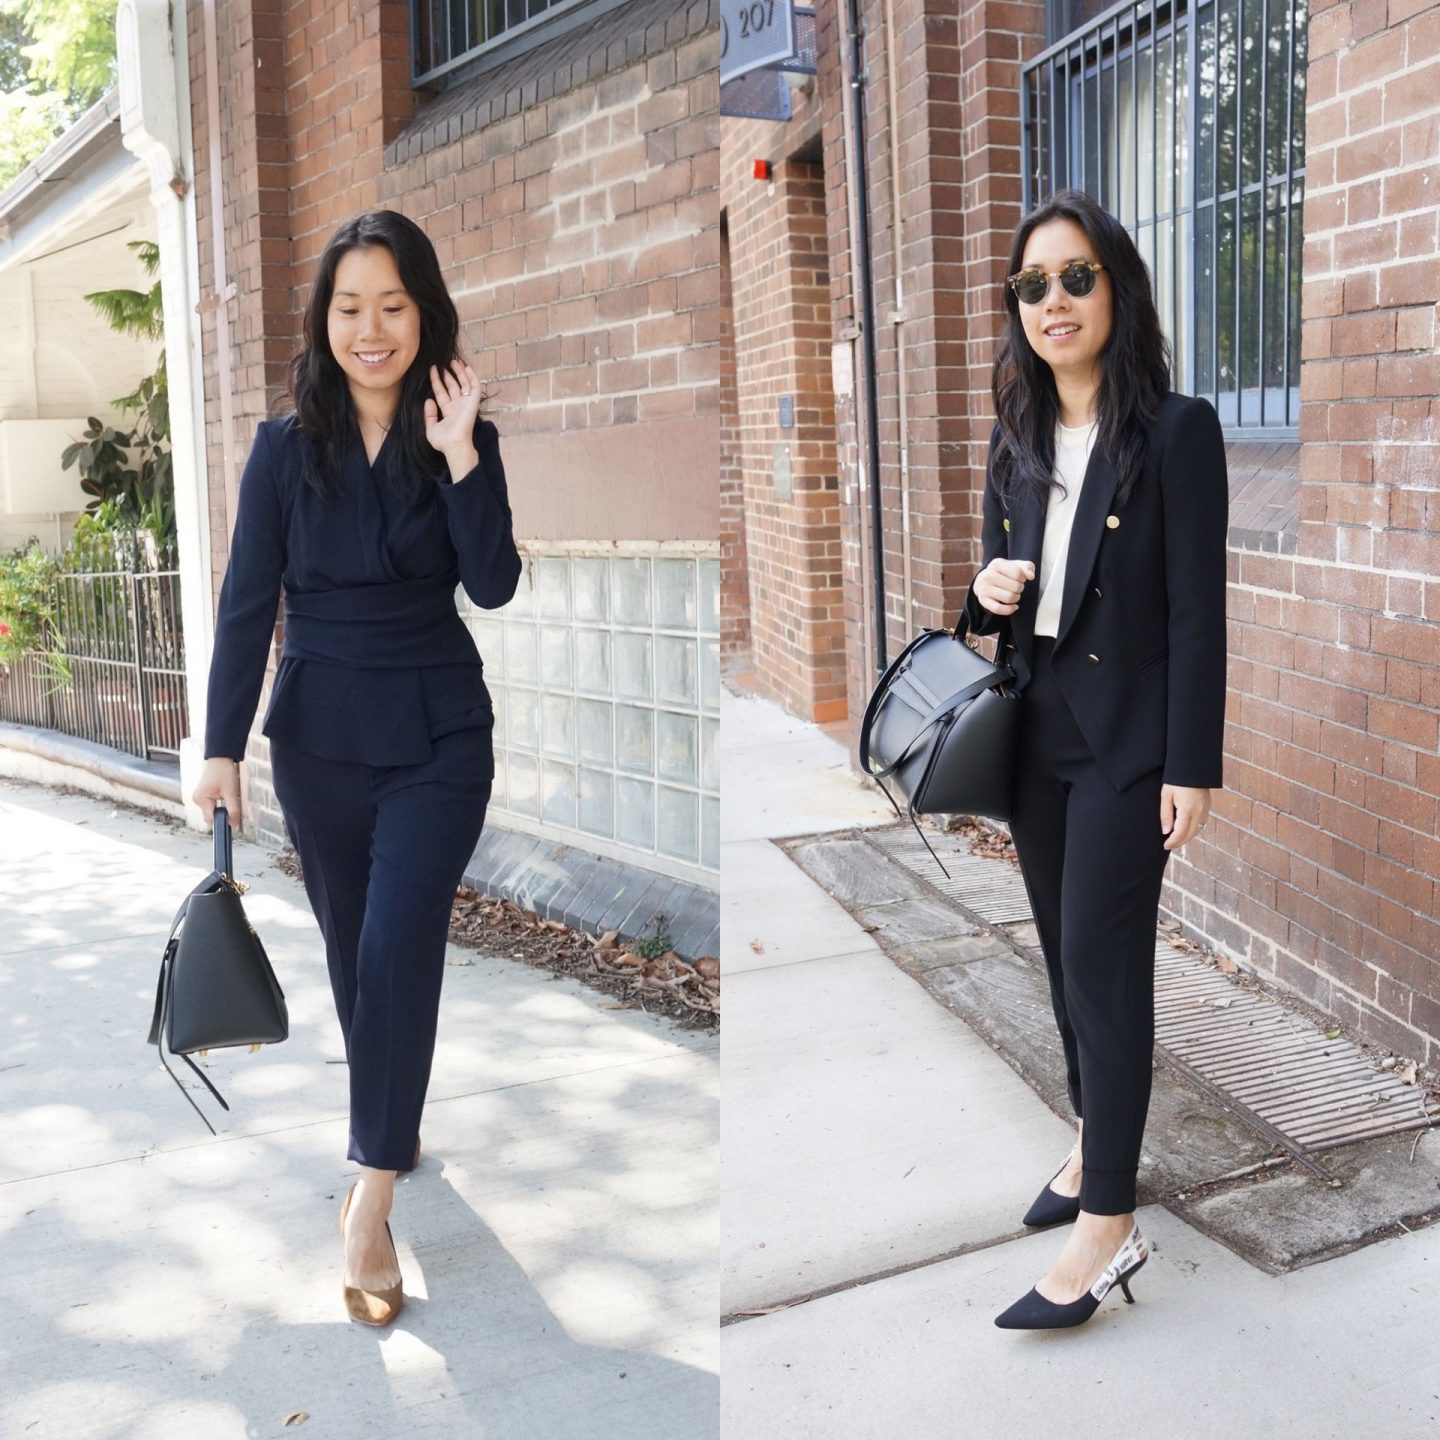 The Art of Power Dressing: 3 Powerful Outfit Combinations to Boost Your Confidence